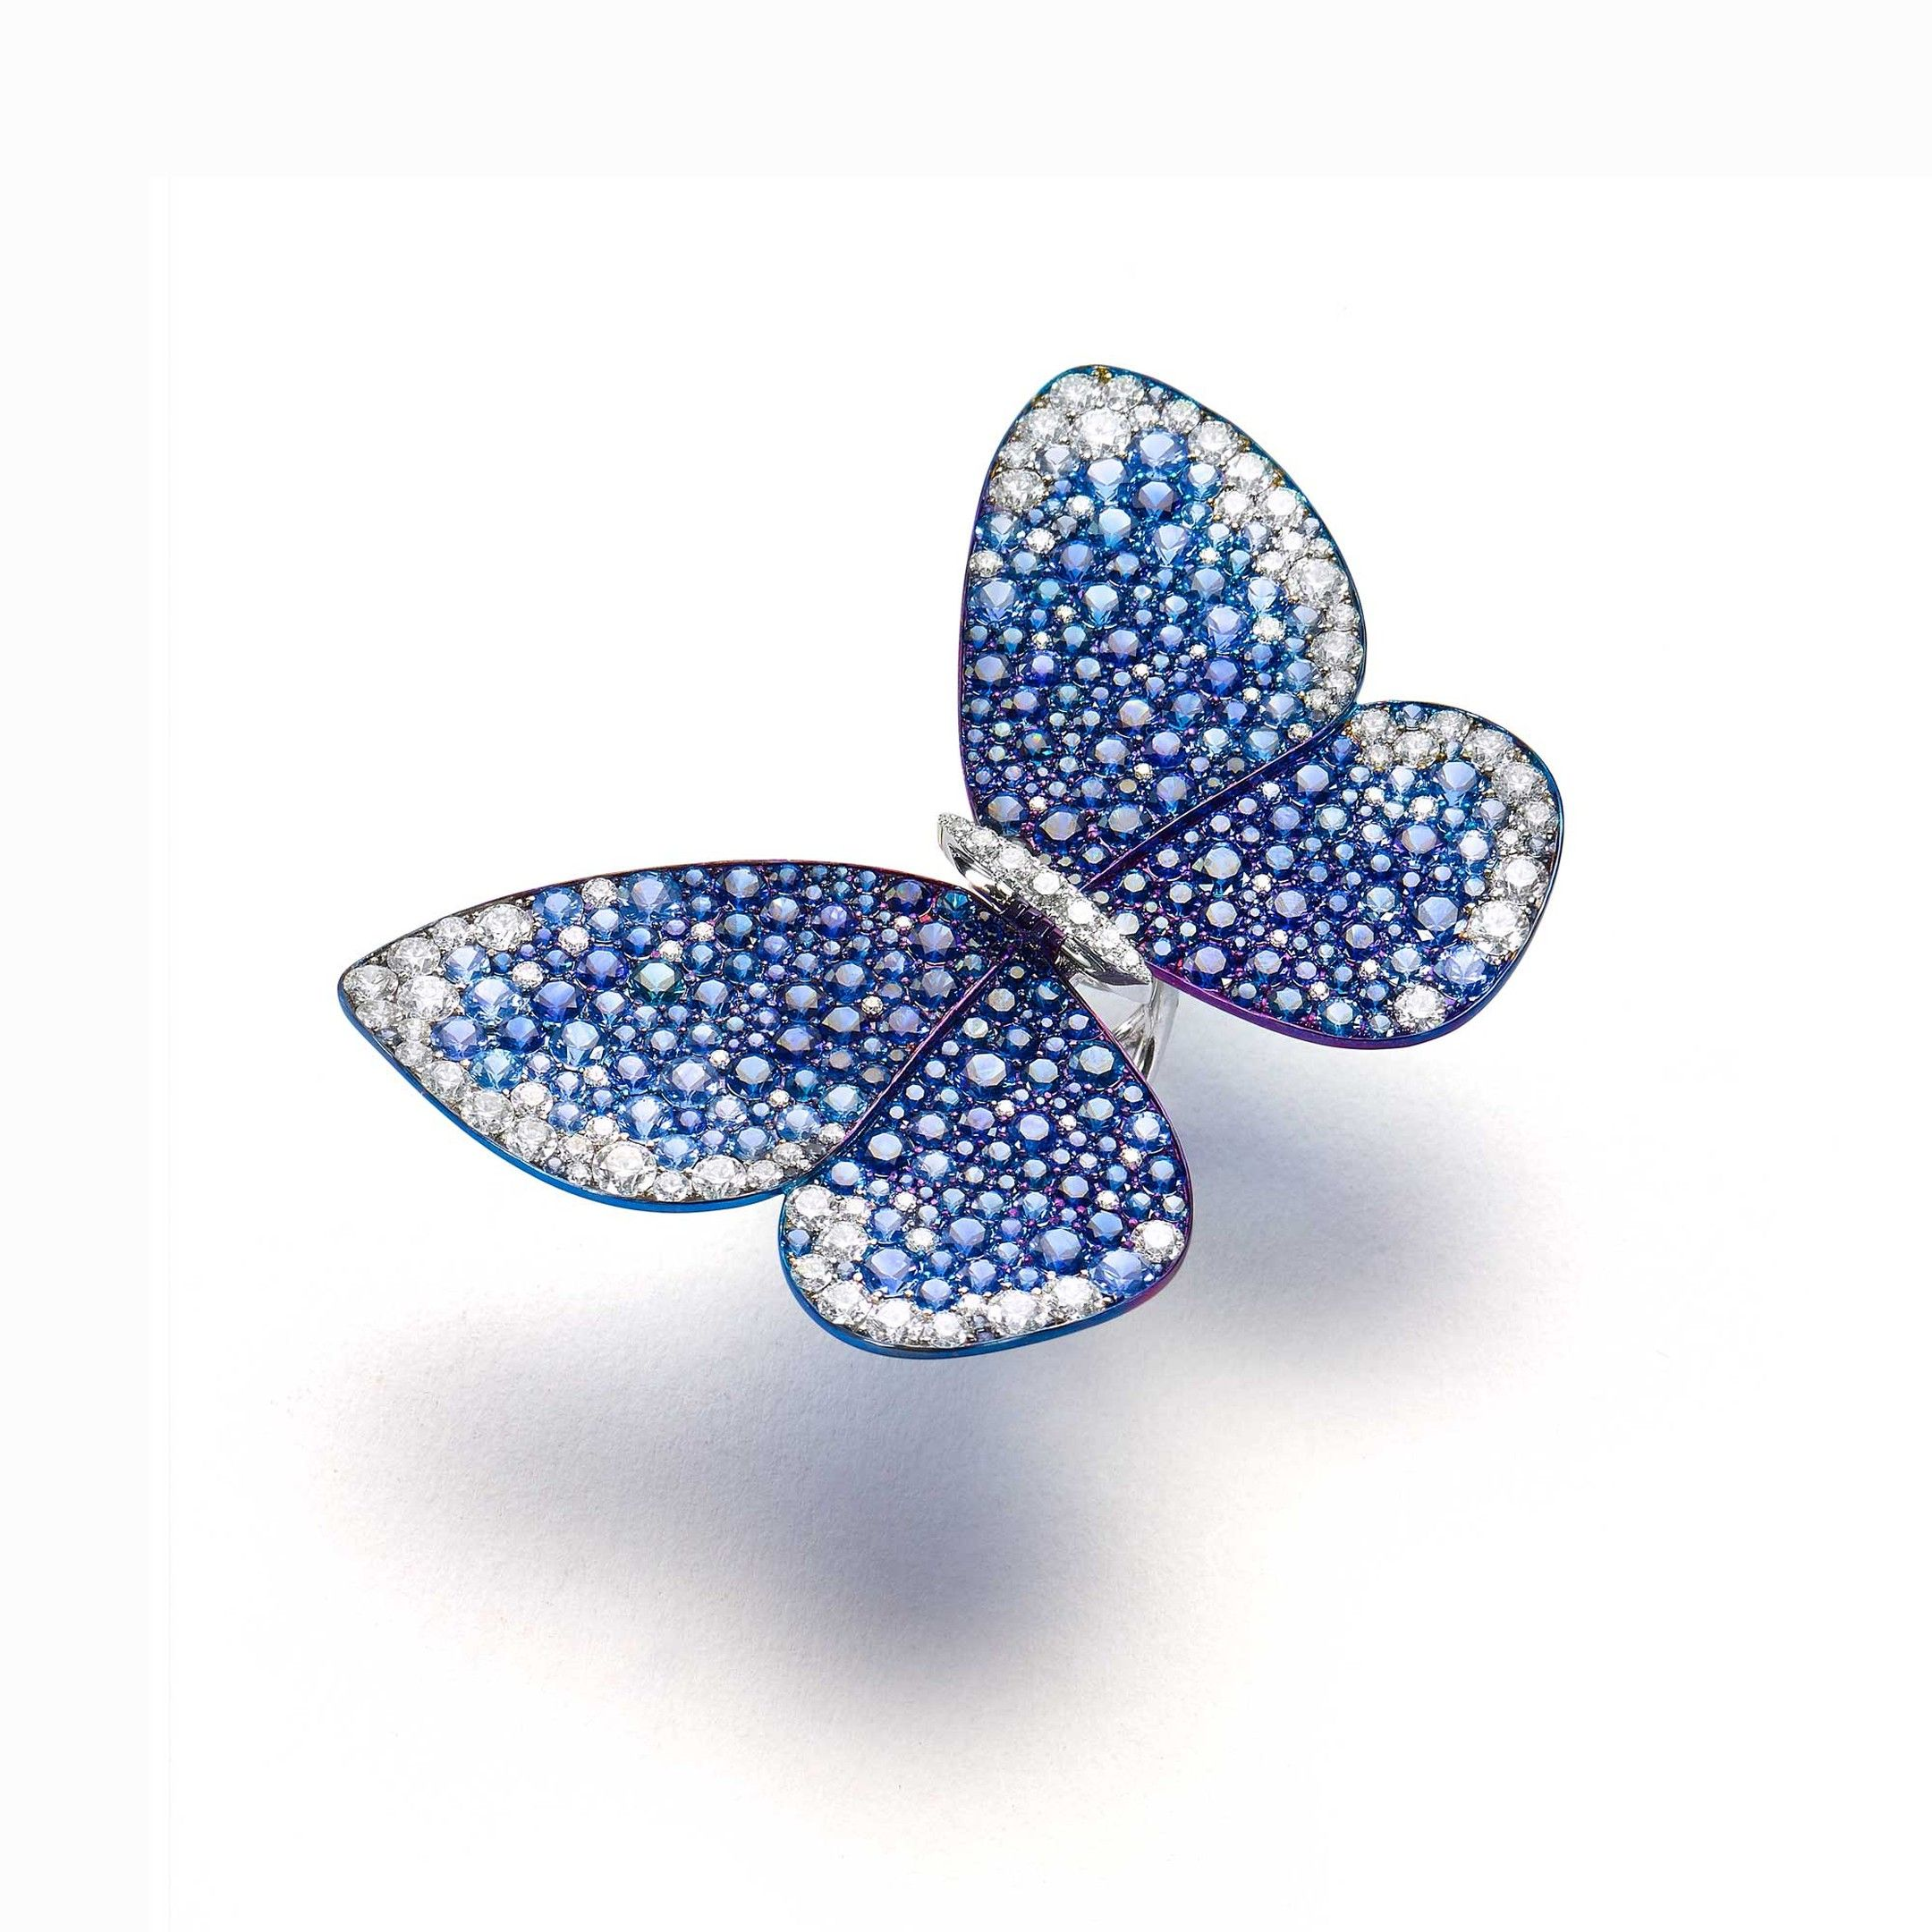 triple cluster sapphires collections a graff marquise butterfly with and set of pav pair earrings enquire sapphire diamond pave